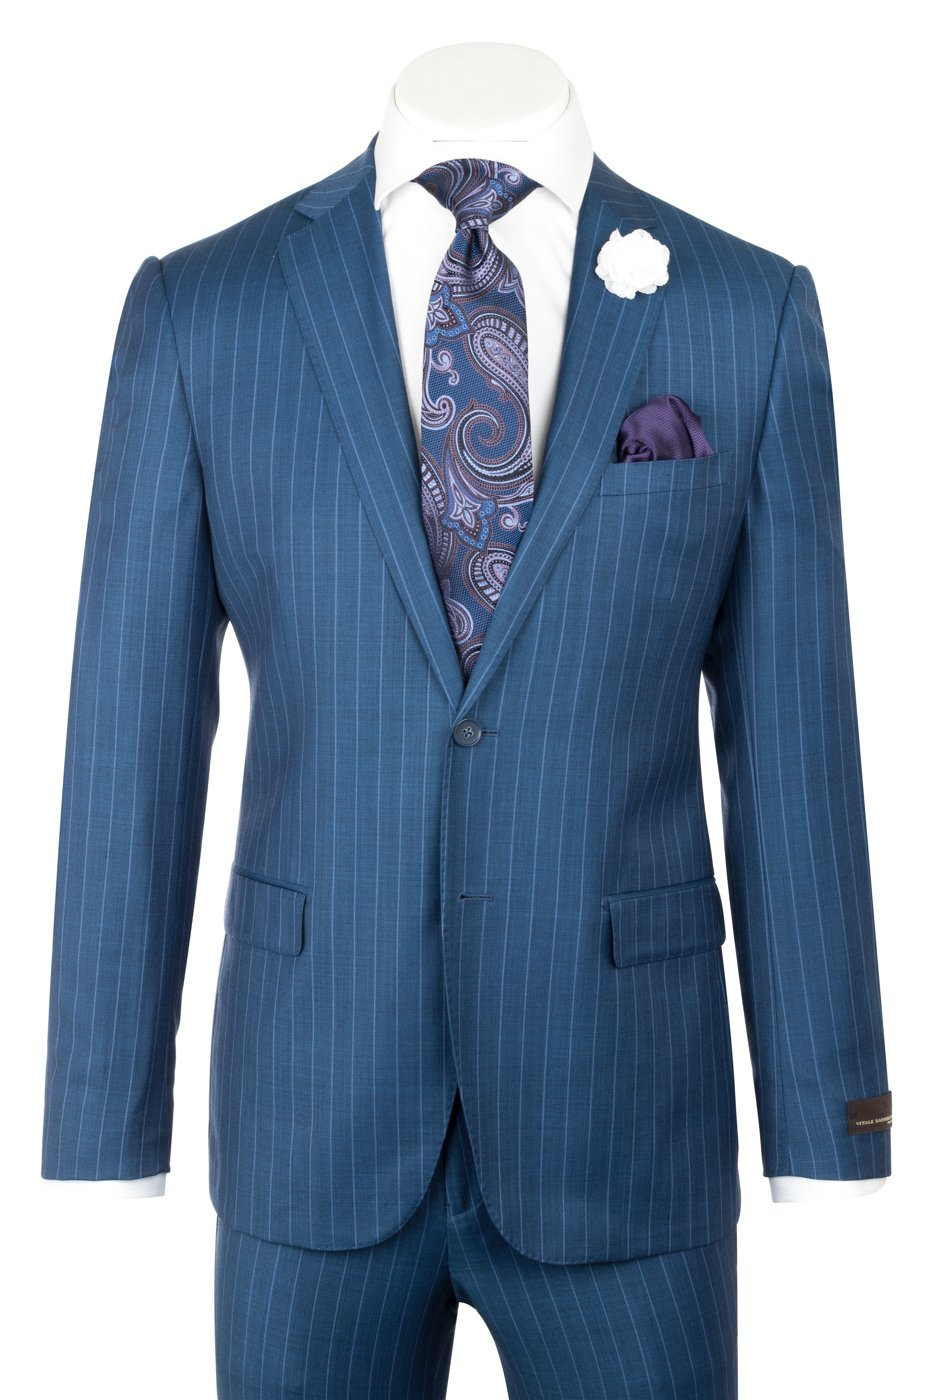 Porto Slim Fit, Teal Blue with stripe, Pure Wool Suit by VITALE BARBERIS CANONICO Cloth by Canaletto Menswear CV9211